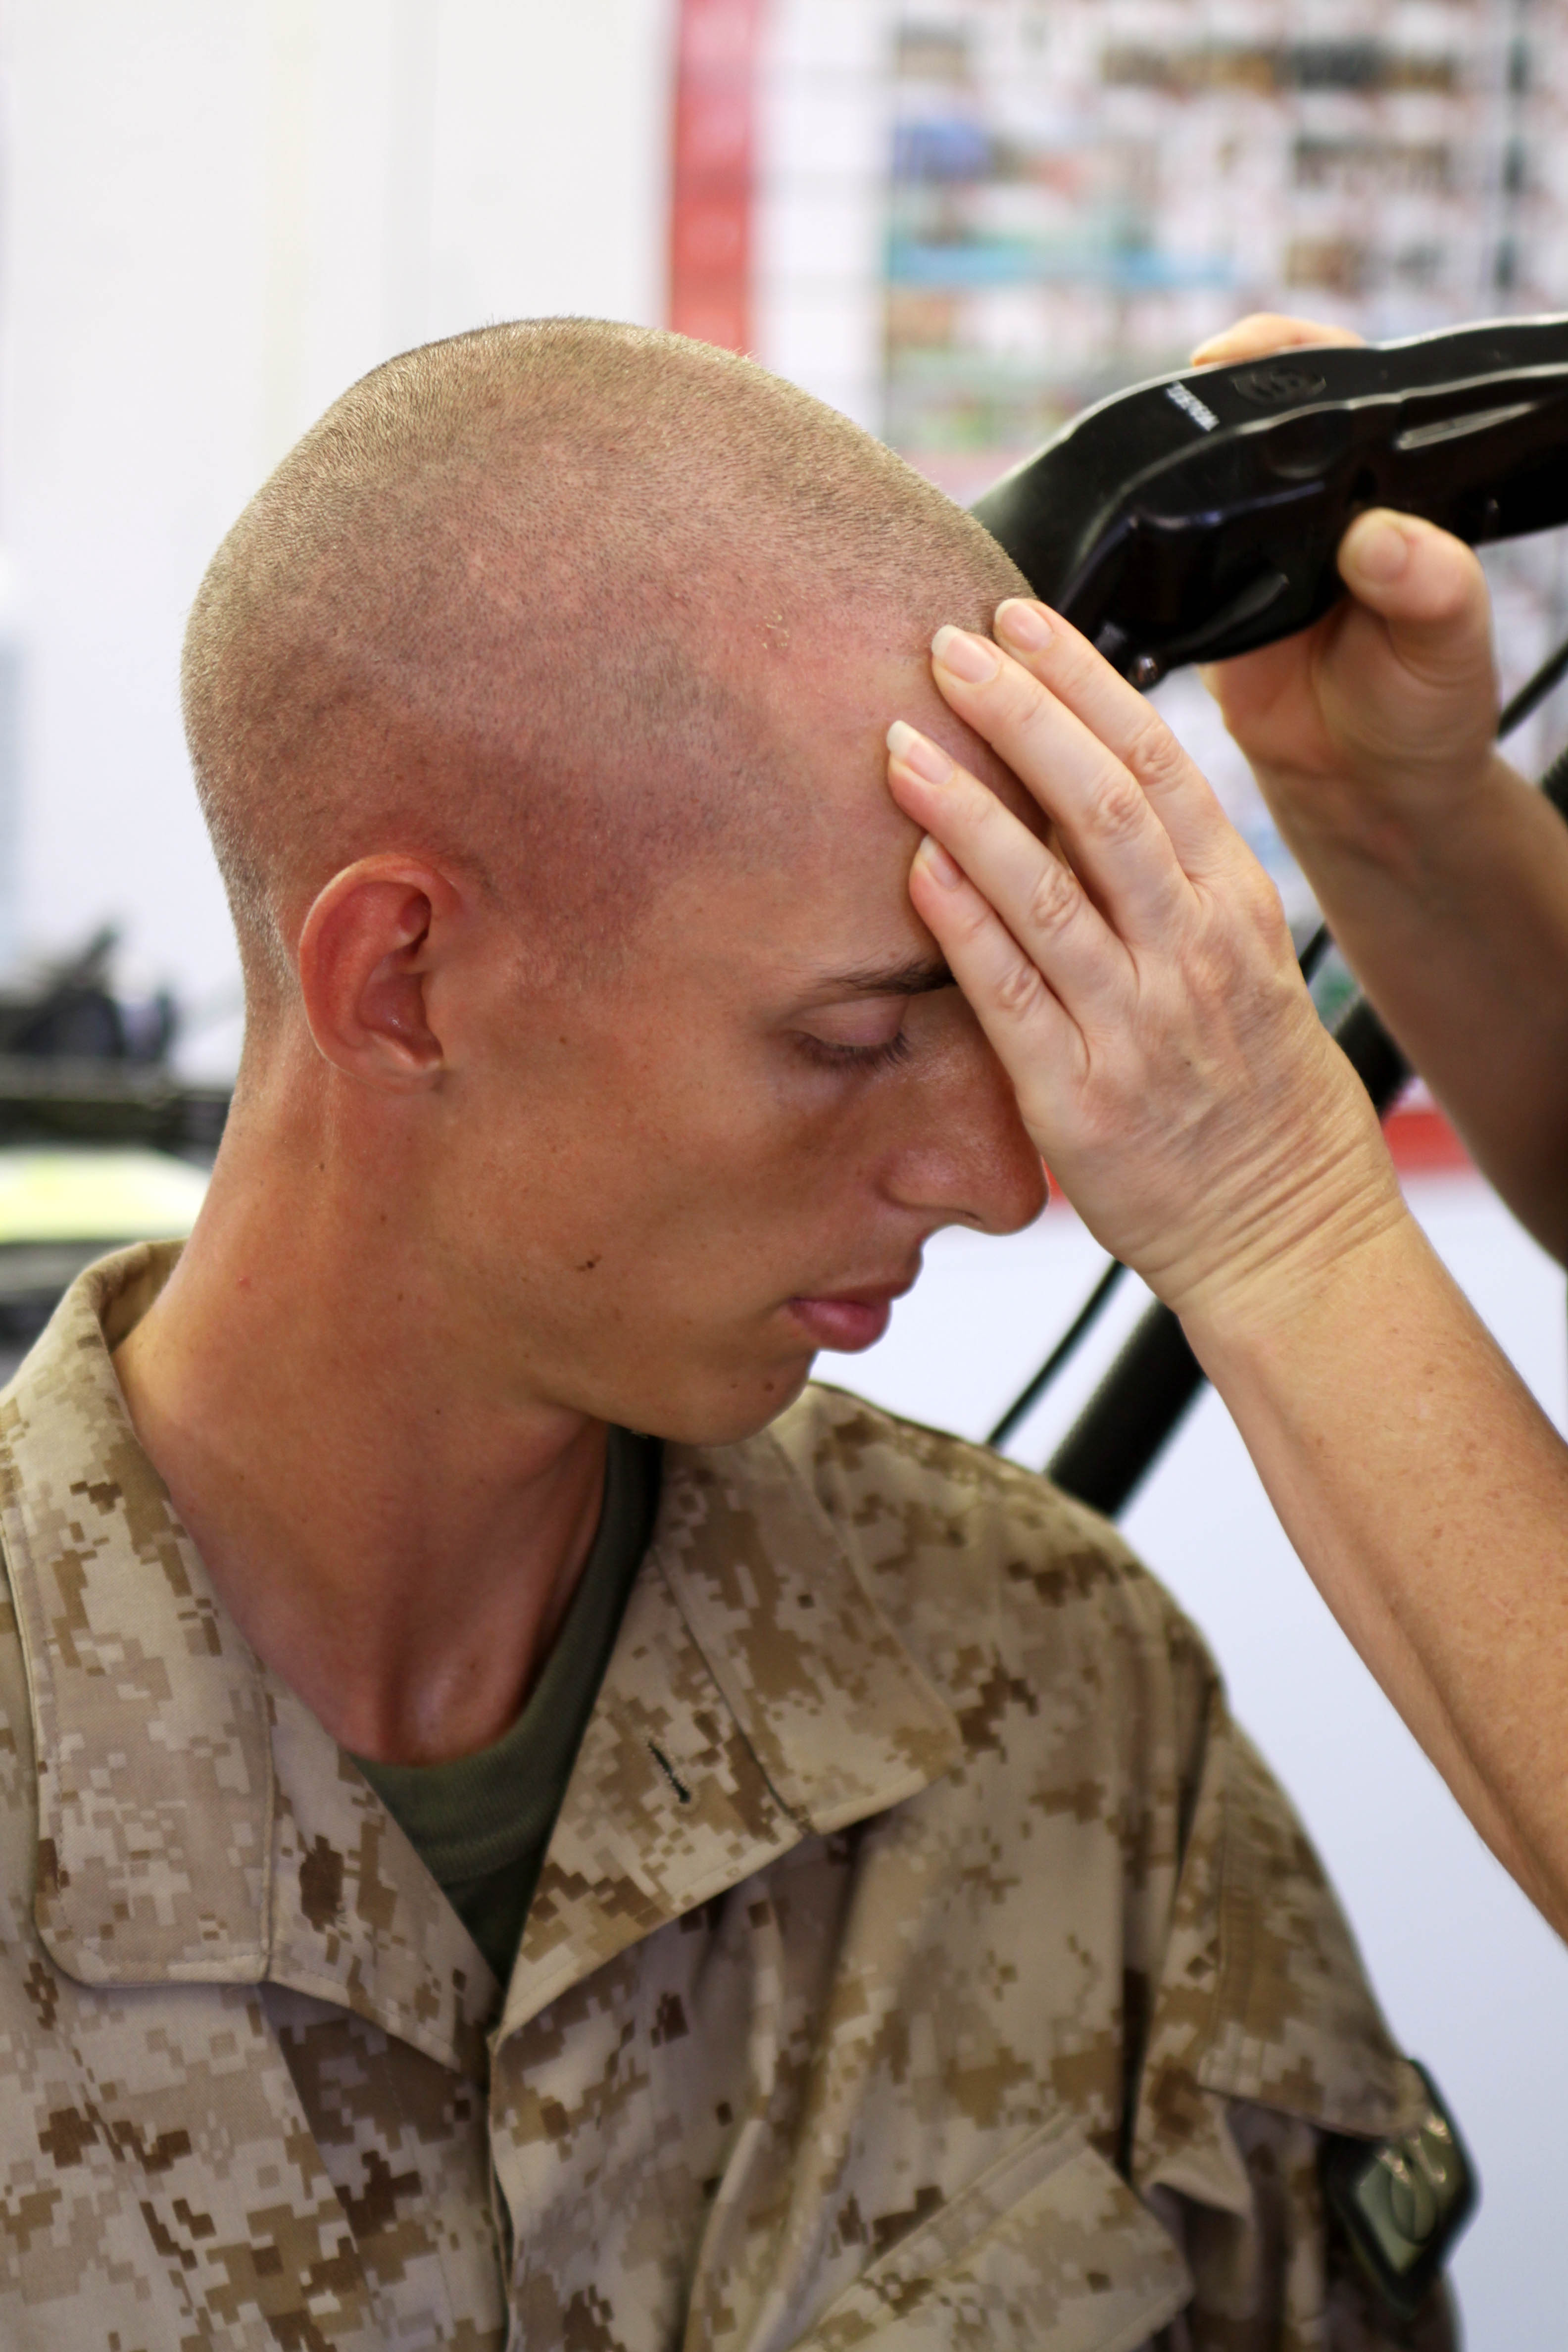 A Short Military Haircut On Young Marine Male